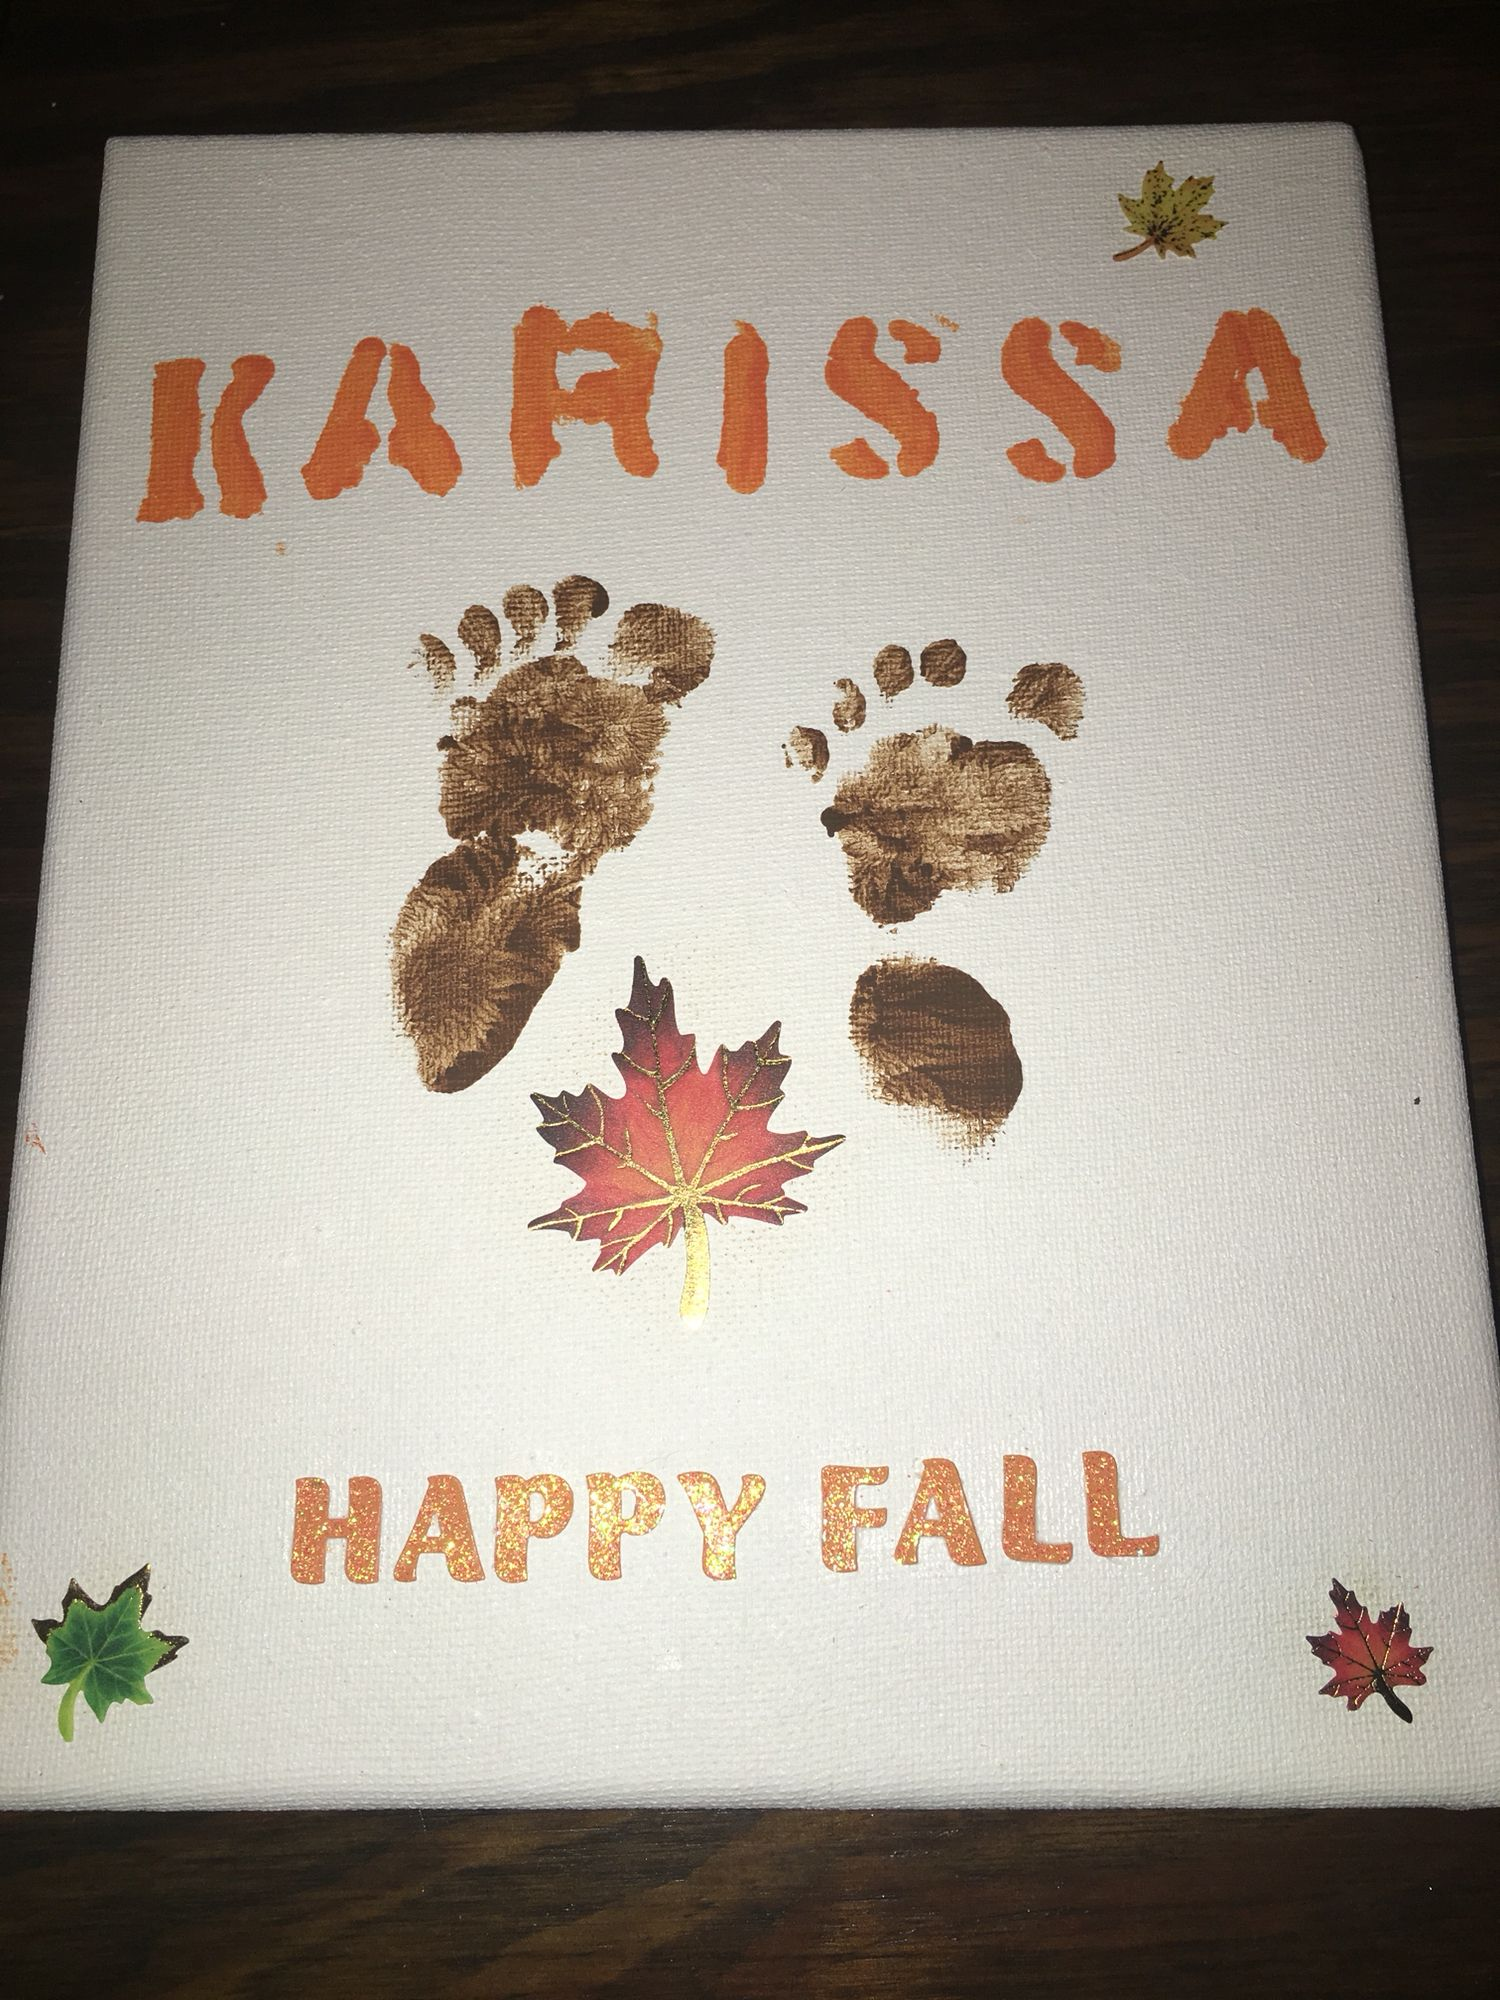 Cute DIY feet or hand print craft for Mommy and Daddy to do with baby or young child.  Great gift for all holidays and special occasions. All materials bought from Walmart.  Canvas, safe non-toxic water base paint, stickers, craft glue, stencil letters, Make it with your own special touch. We did a fall theme.